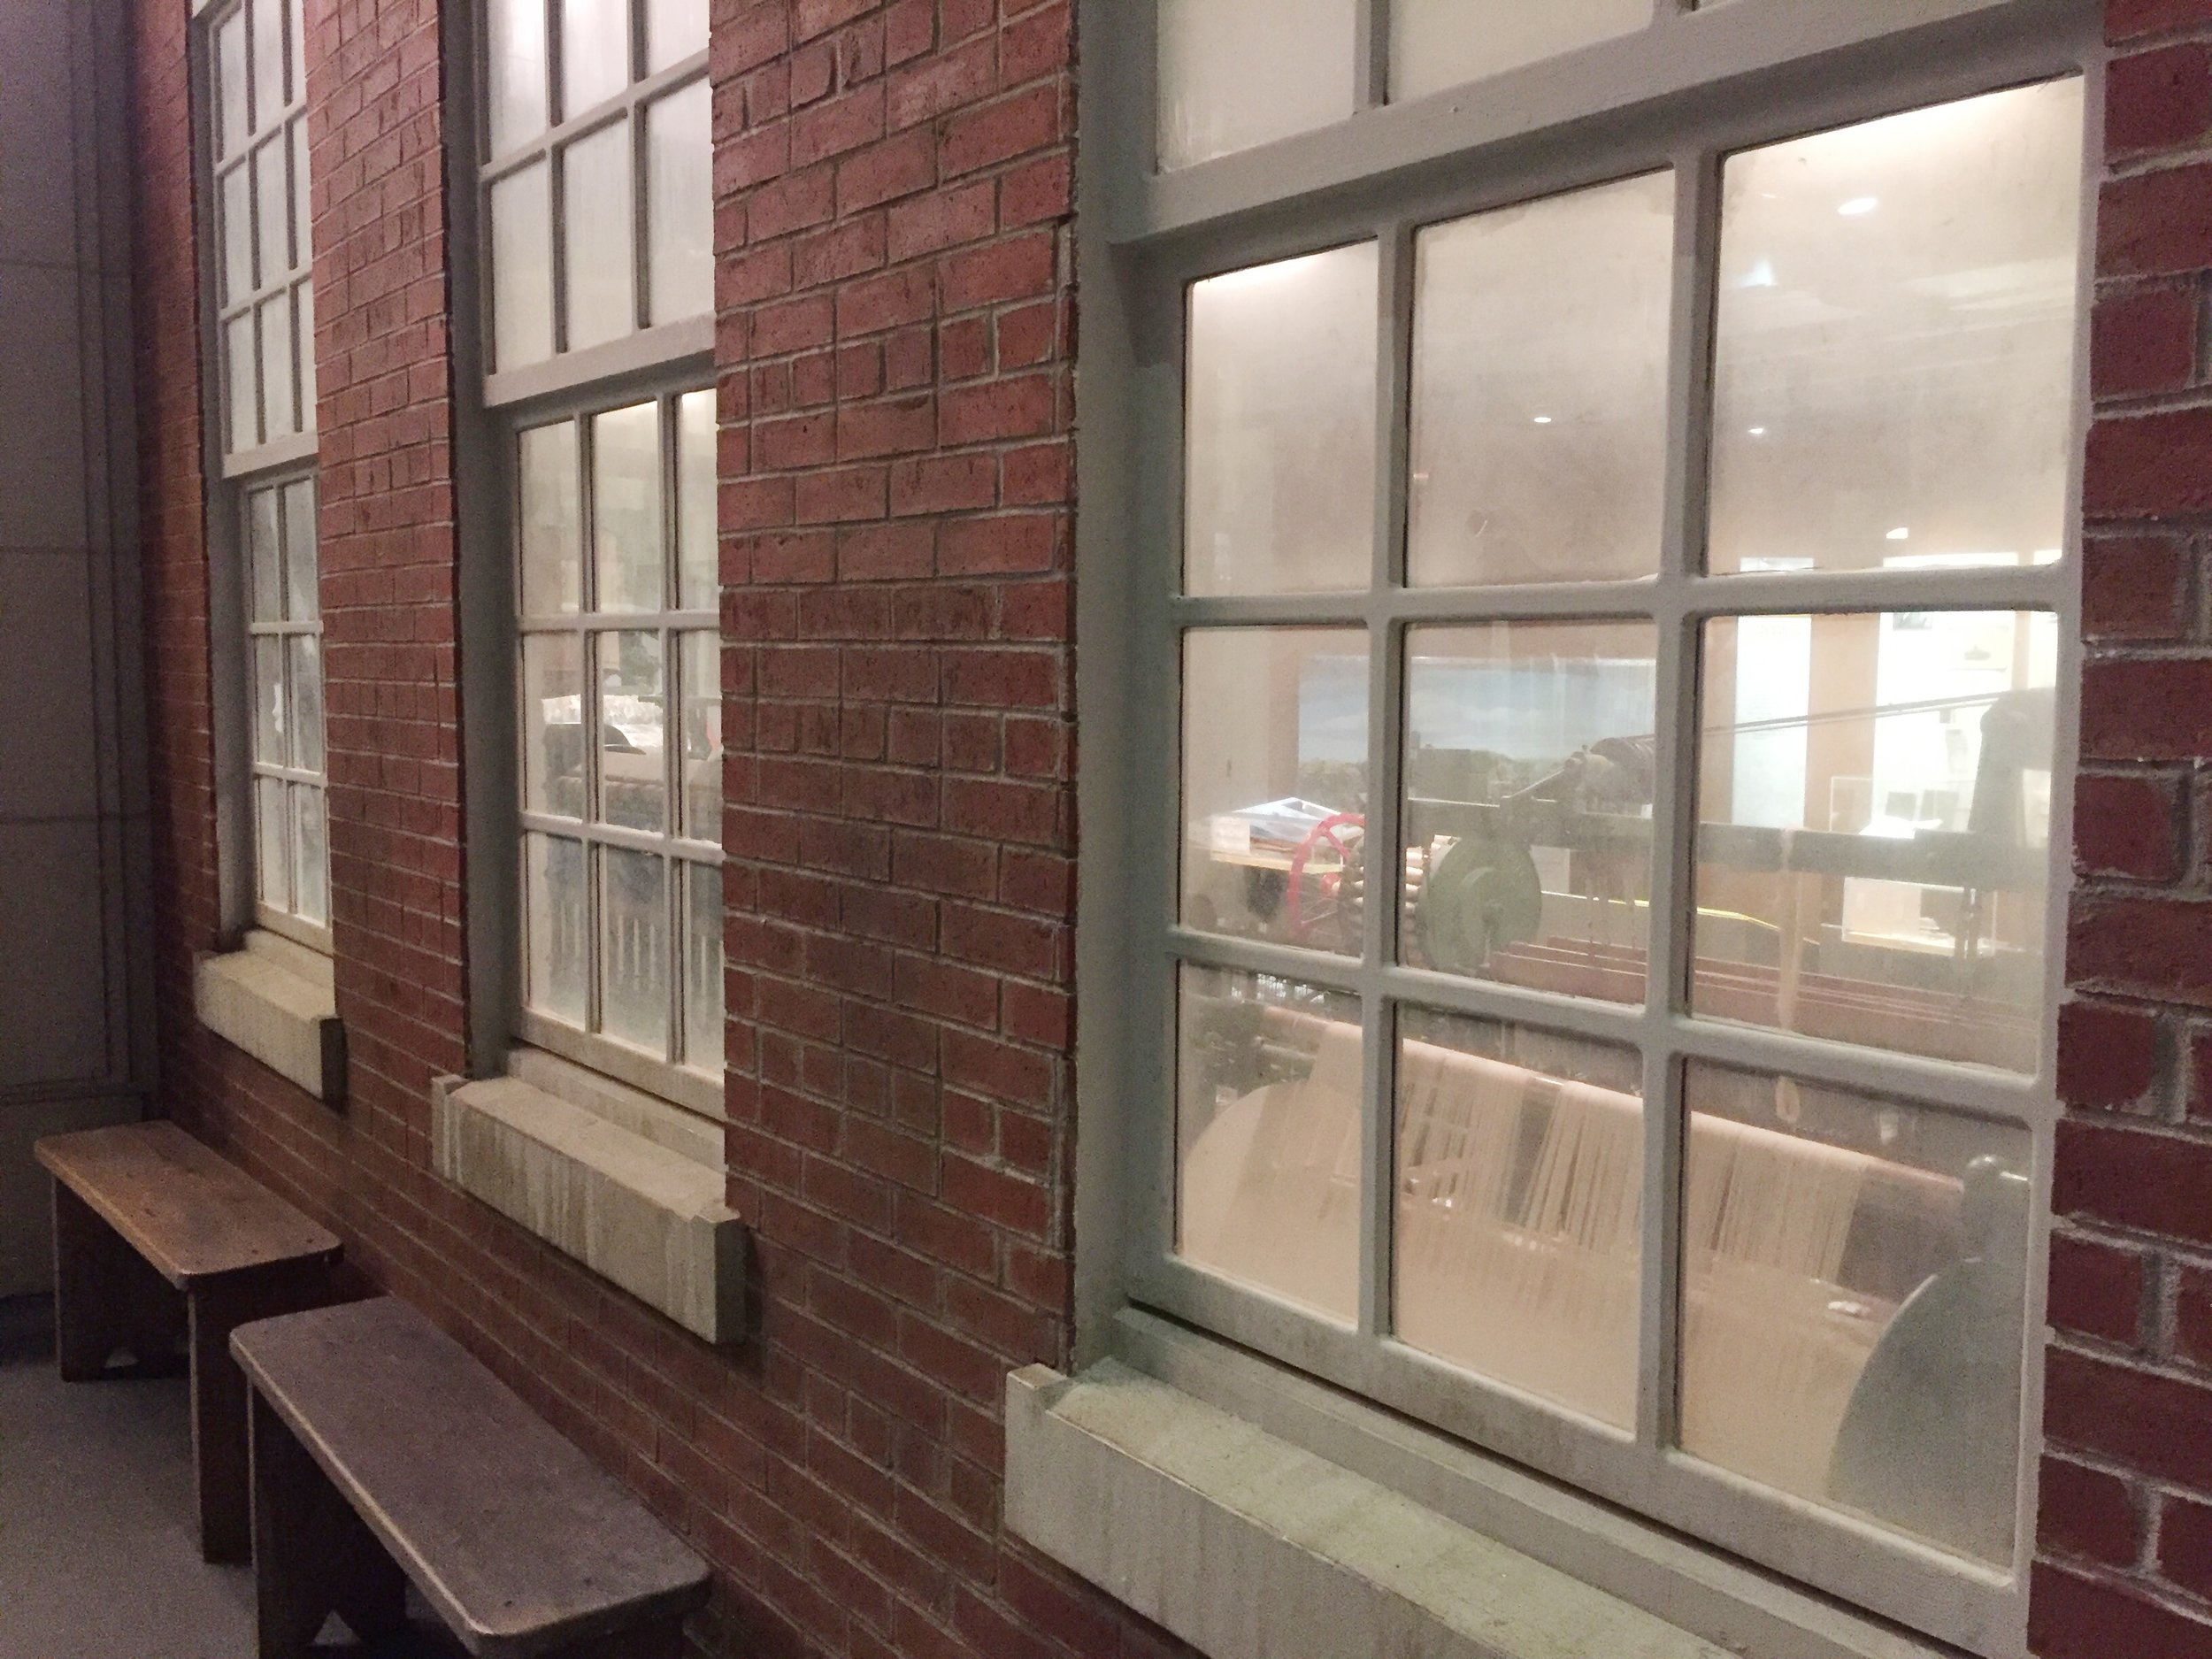 Cotton Mill, a view from the window.  Levine Museum of the New South